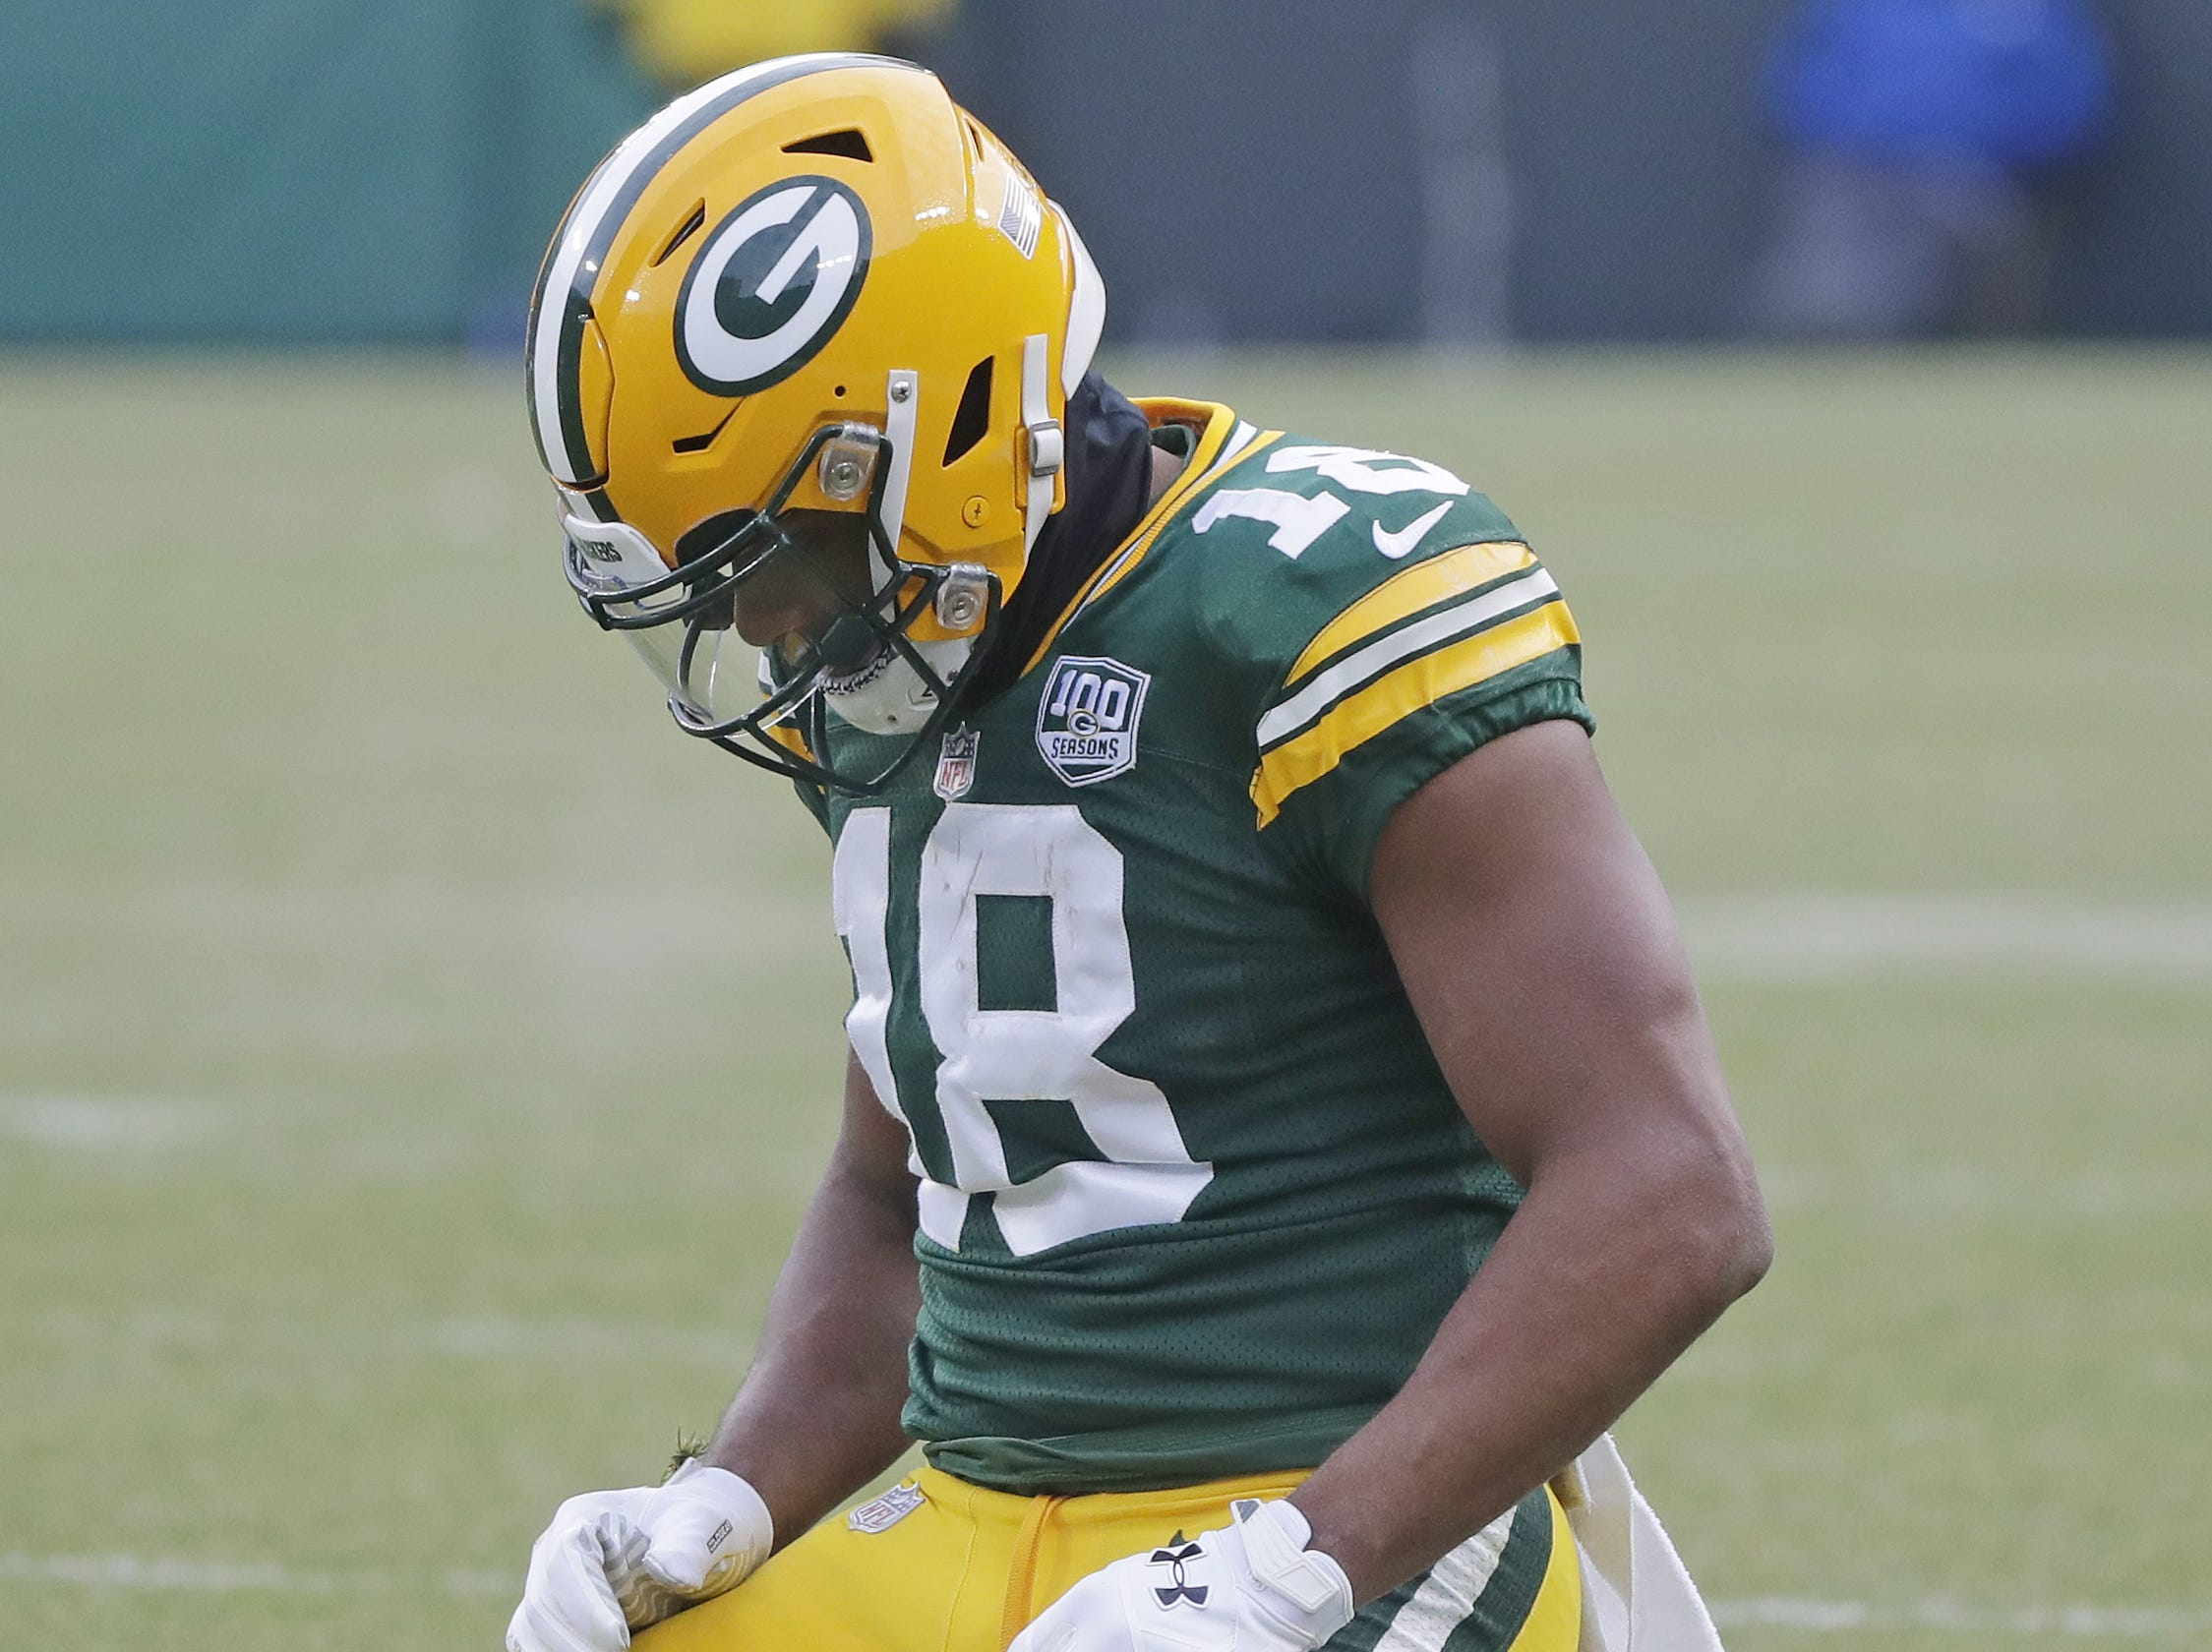 Green Bay Packers wide receiver Randall Cobb (18) kneels on the field after dropping the ball in the fourth quarter against the Detroit Lions at Lambeau Field on Sunday, December 30, 2018 in Green Bay, Wis. Adam Wesley/USA TODAY NETWORK-Wis